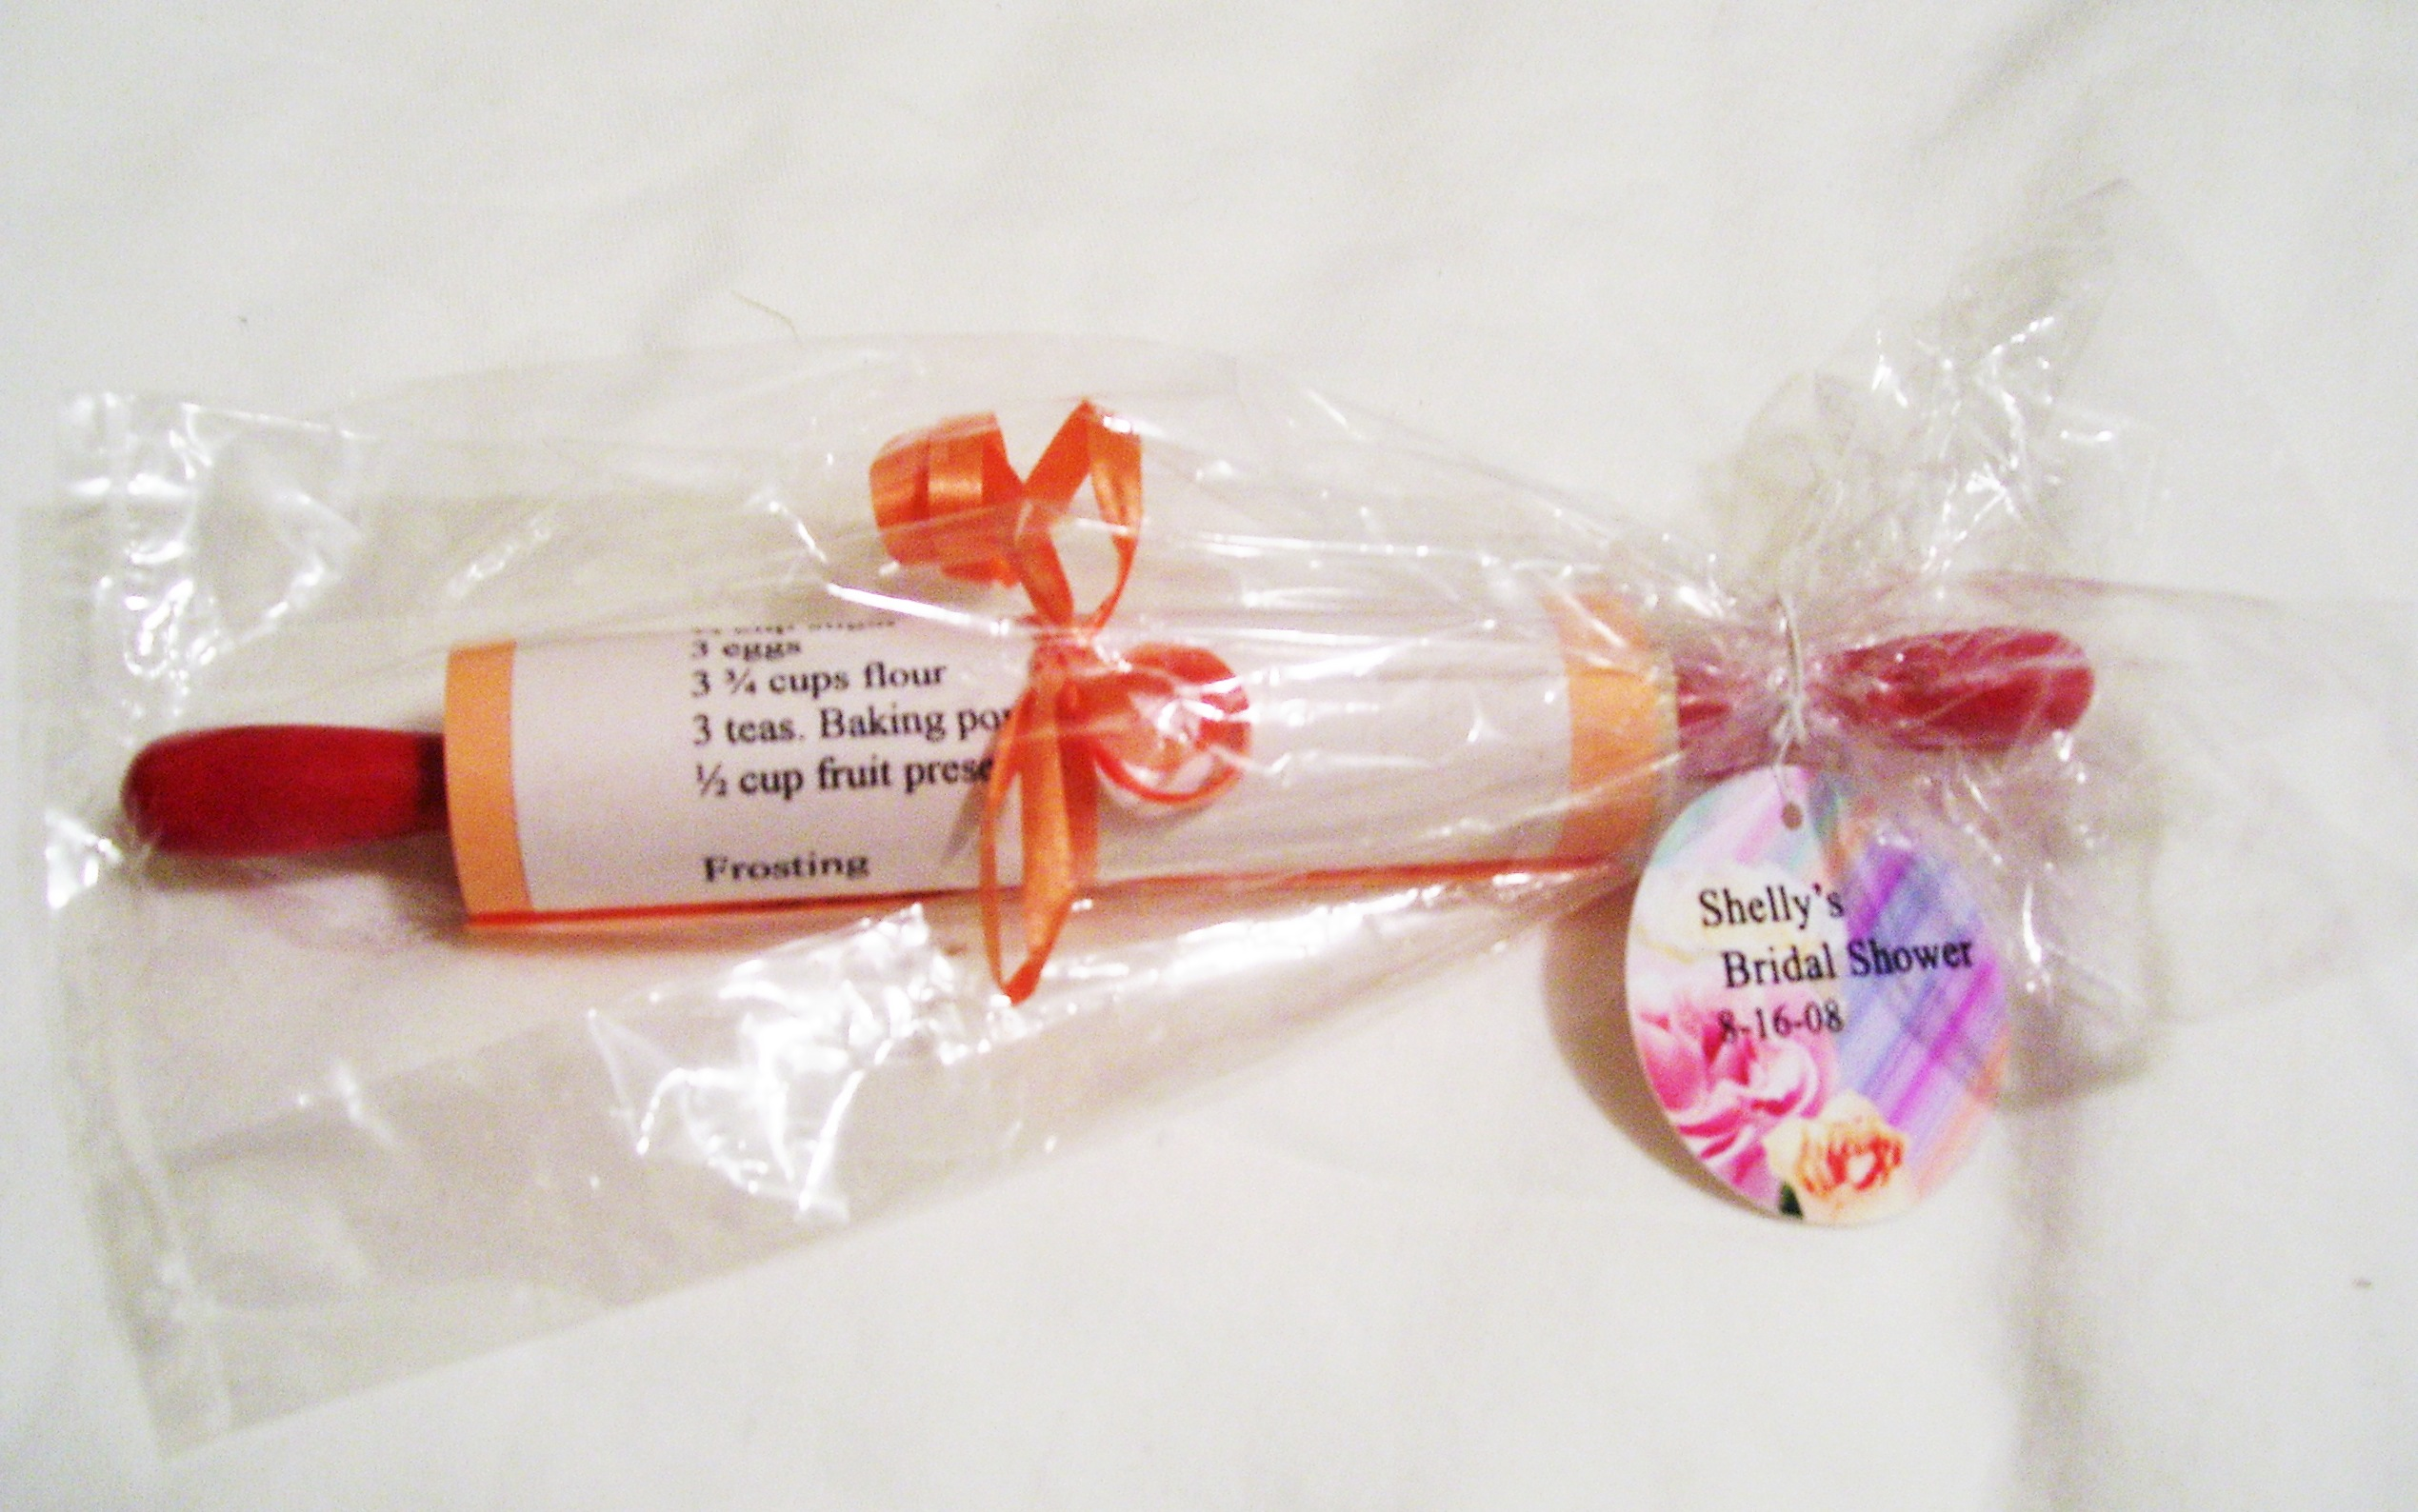 Bridal shower favors and bridal shower gifts at Beaucoup Favors